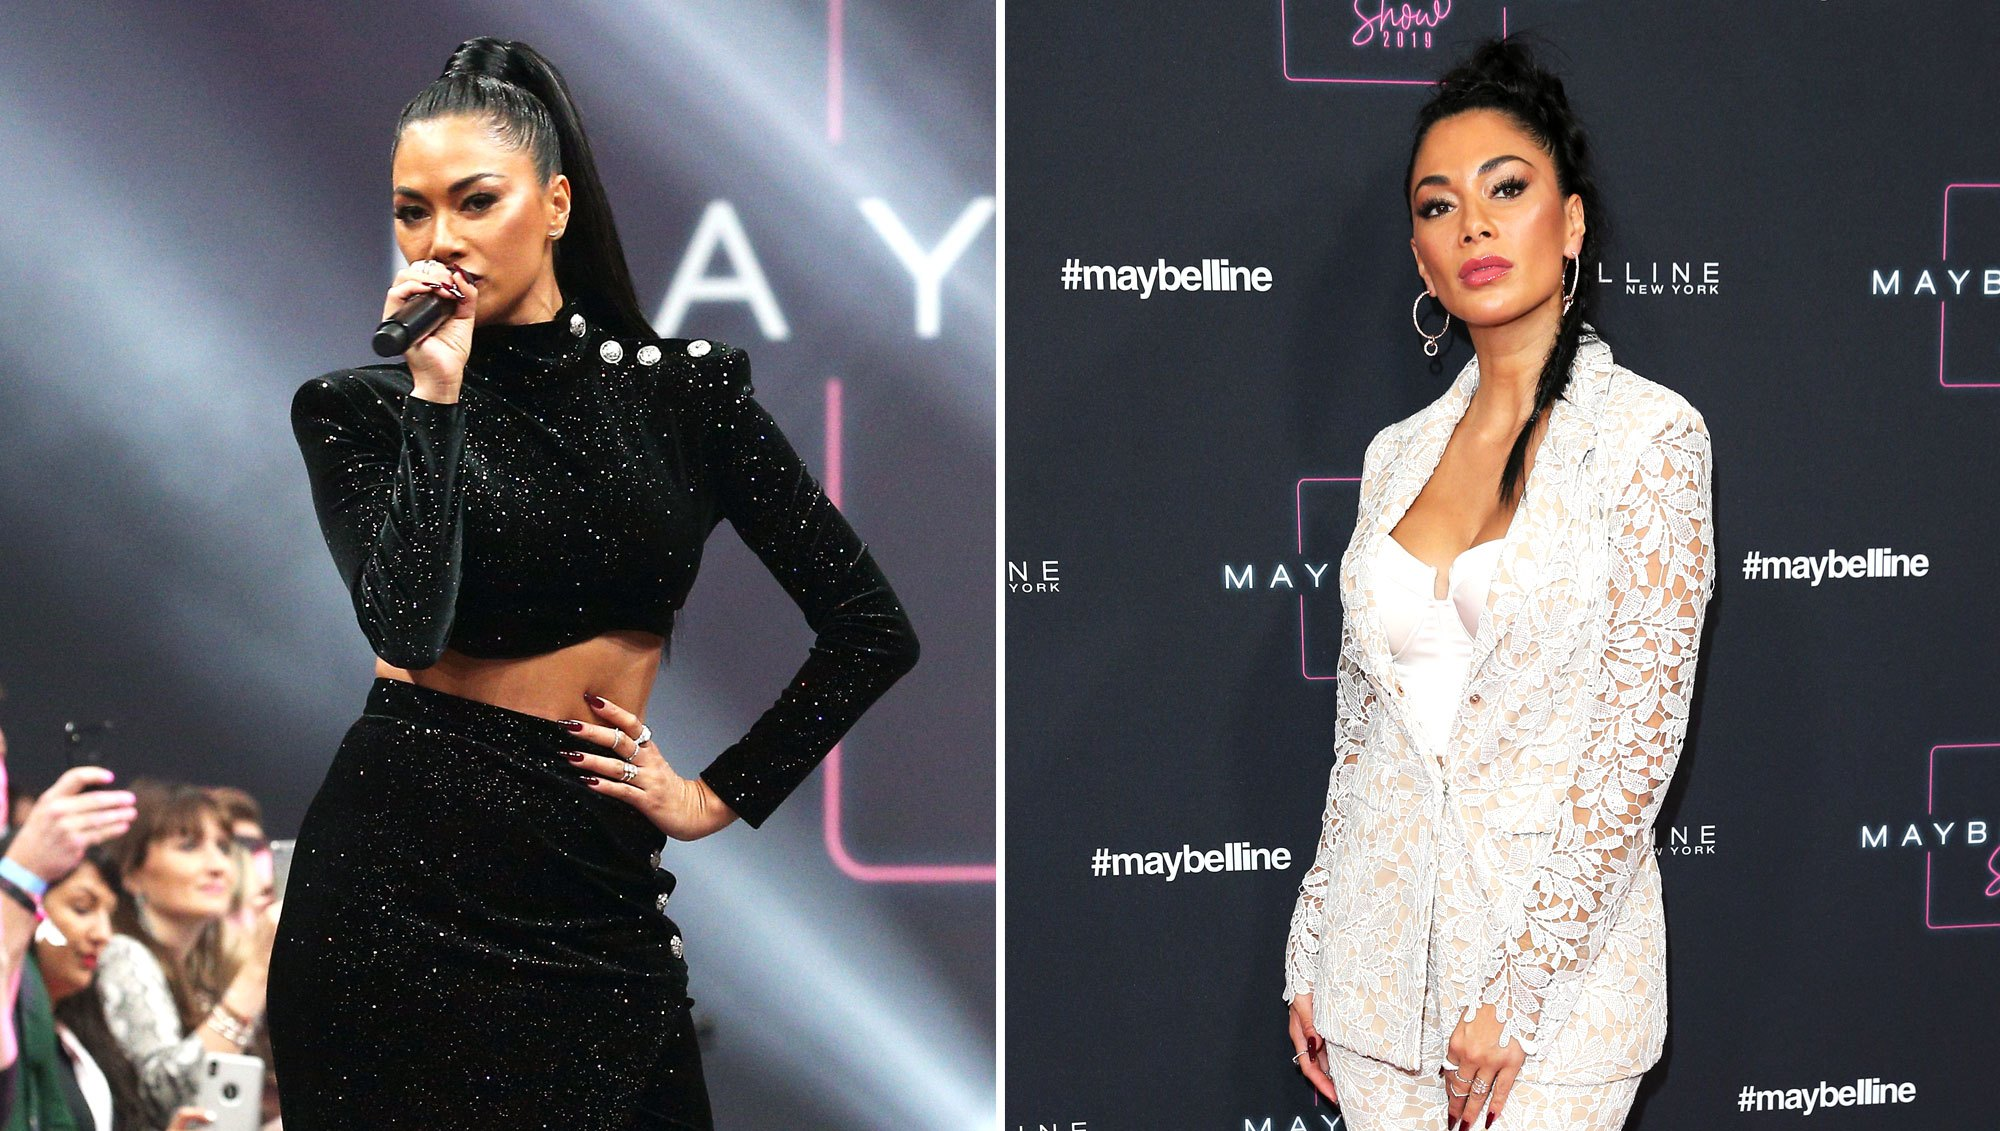 Nicole Scherzinger Rocked Two Different Night Out Looks in the Same Night